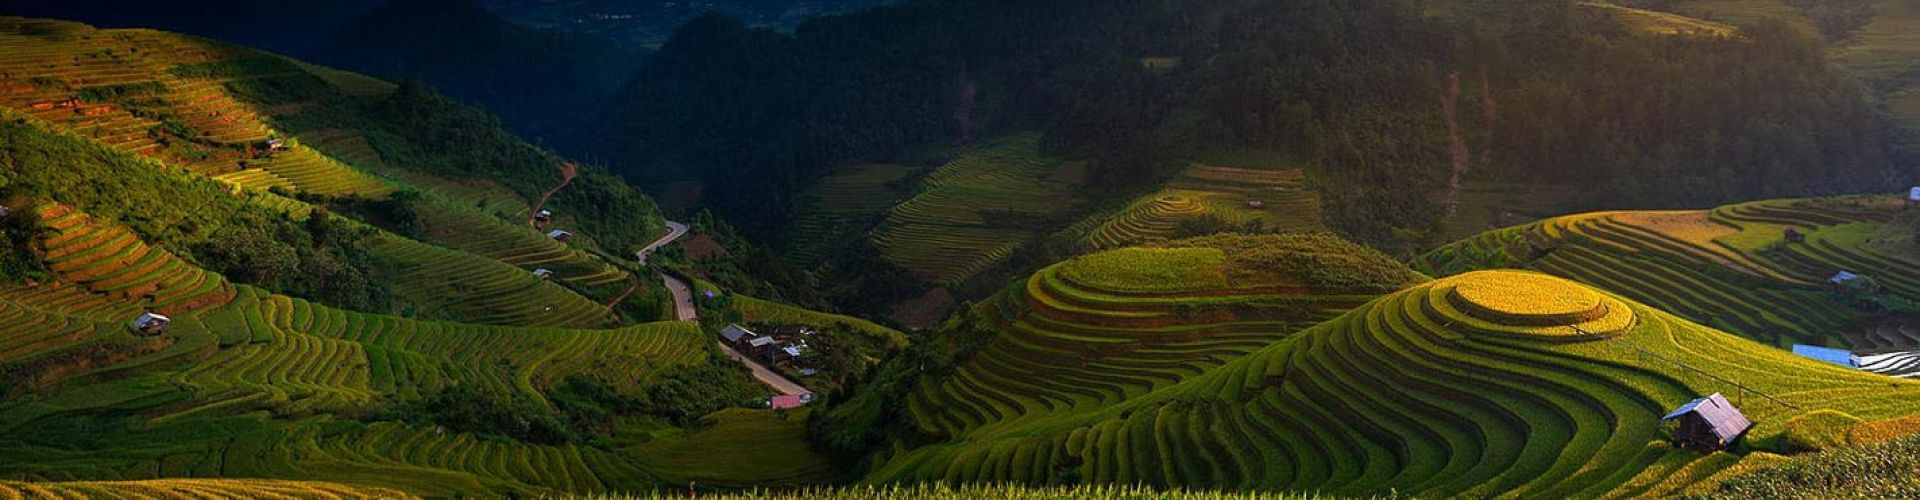 Destinations in Mu Cang Chai